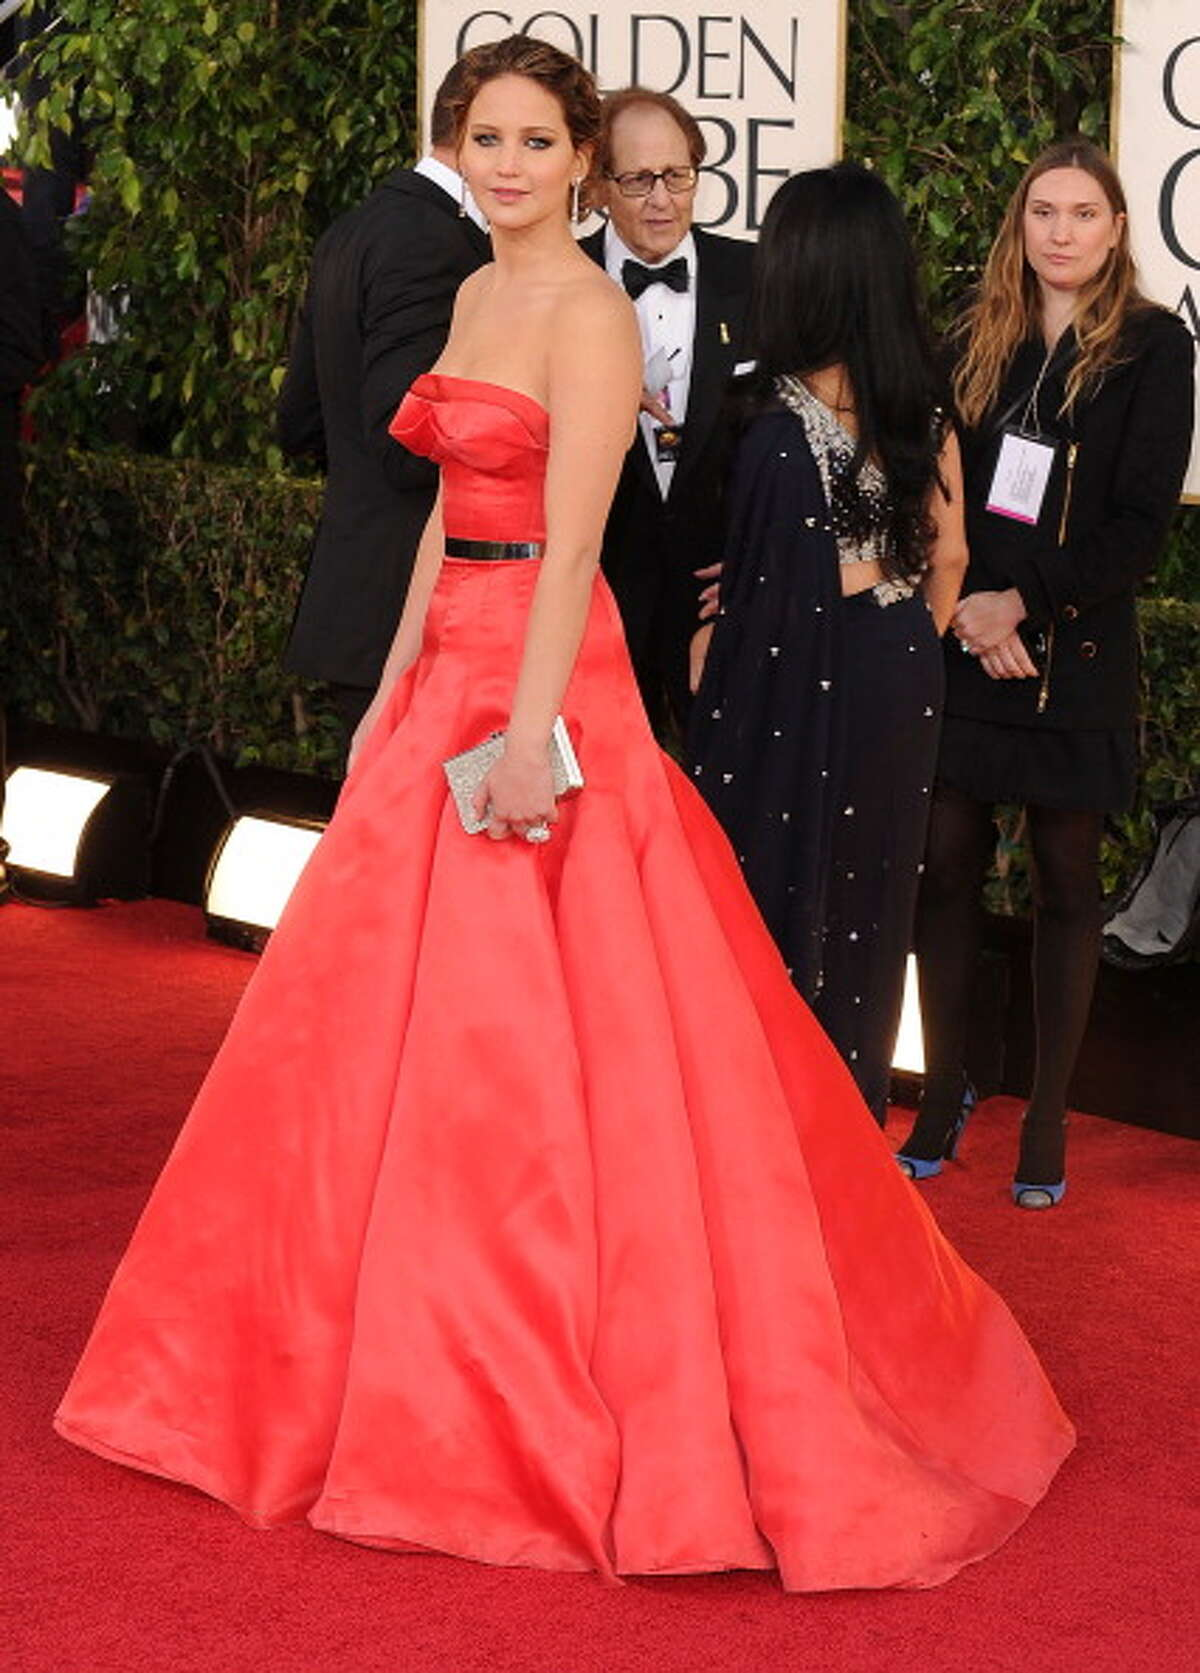 Jennifer Lawrence arrives at the 70th Annual Golden Globe Awards in Christian Dior Couture at The Beverly Hilton Hotel on January 13, 2013 in Beverly Hills, California.